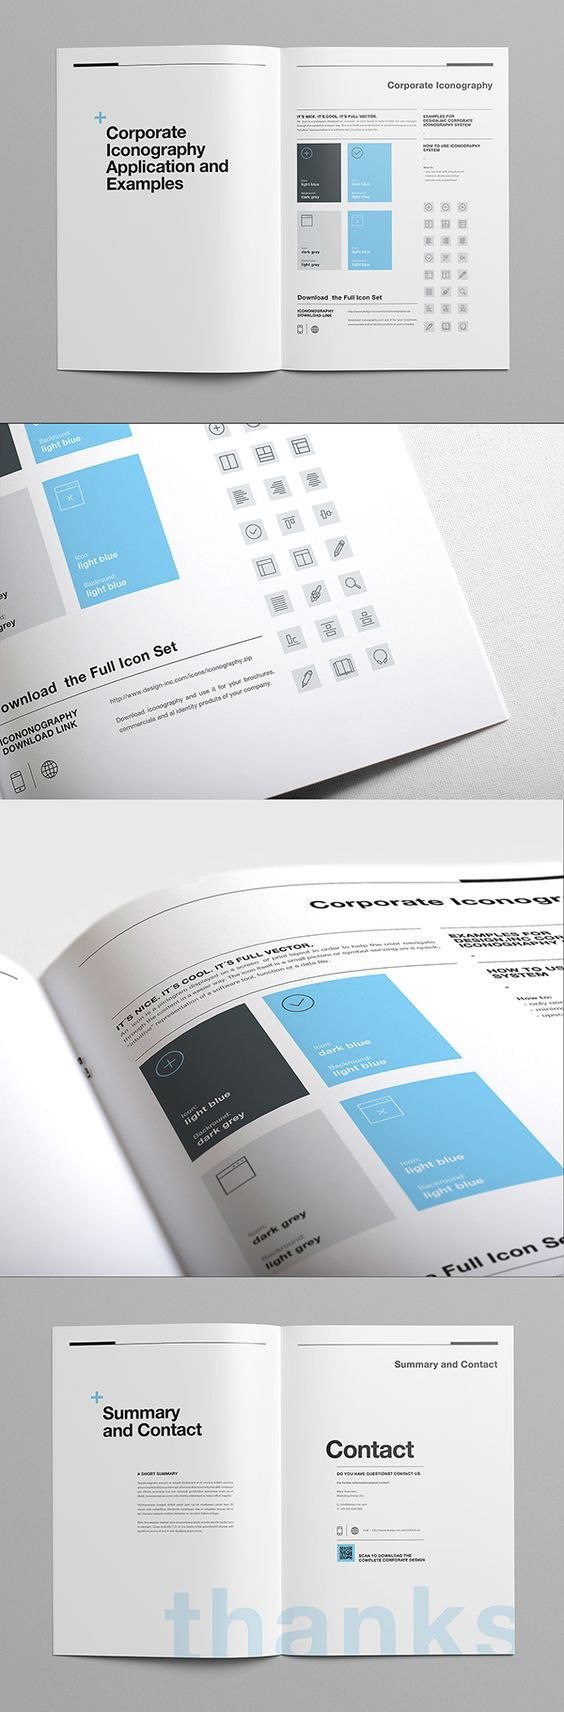 Brand Manual and Identity Template – Corporate Design Brochure – with 40 Pages and Real Text!!!Minimal and Professional Brand Manual and Identity Brochure template for creative businesses, created in Adobe InDesign in International DIN A4 and US Letter…: